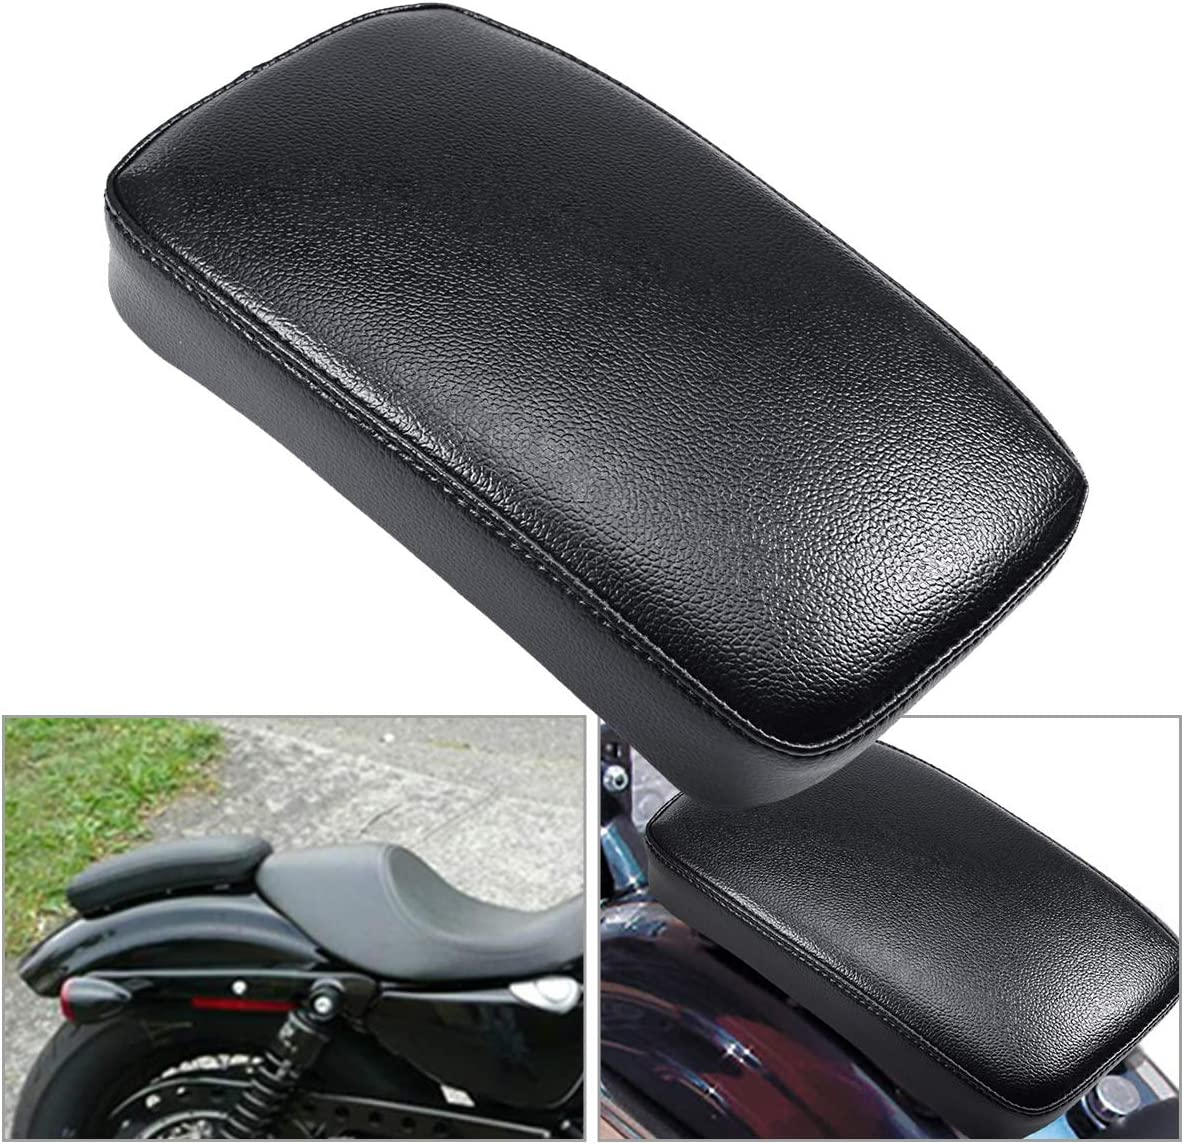 1xRectangle Rear Chusion Passenger Pad Seat 8 Suction Cup For Harley Motorcycle